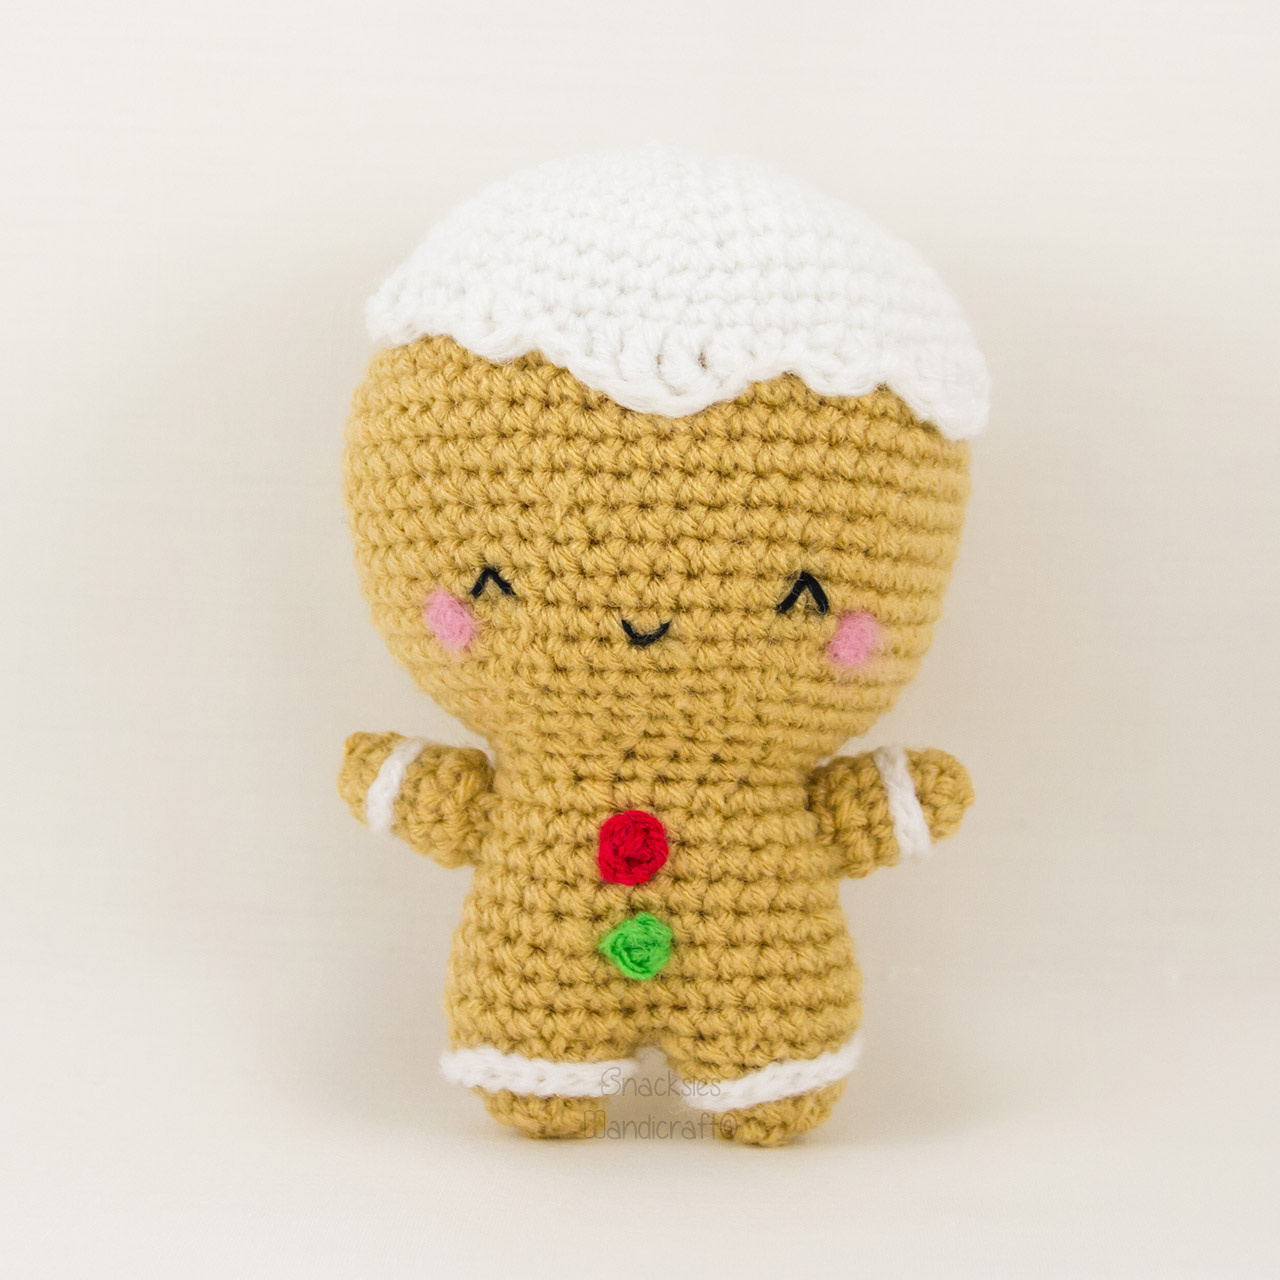 crocheted-gingerbread-man-christmas-amigurumi